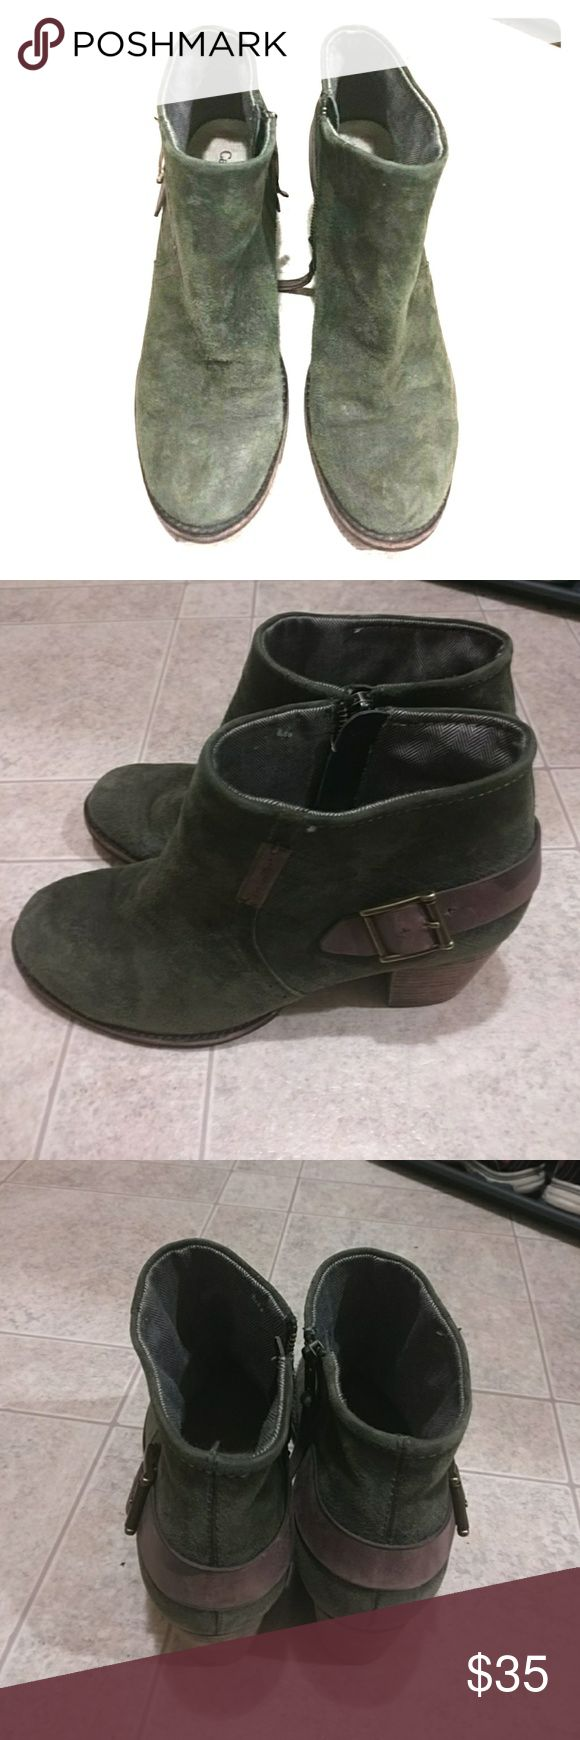 Womens Caterpillar boots 9.5 Caterpillar boots green color excellent condition high heel 2.5 inch. Size 9. 5. They are in excellent condition and very comfortable. I'm selling them at an excellent price so get them today yeah! Caterpillar Shoes